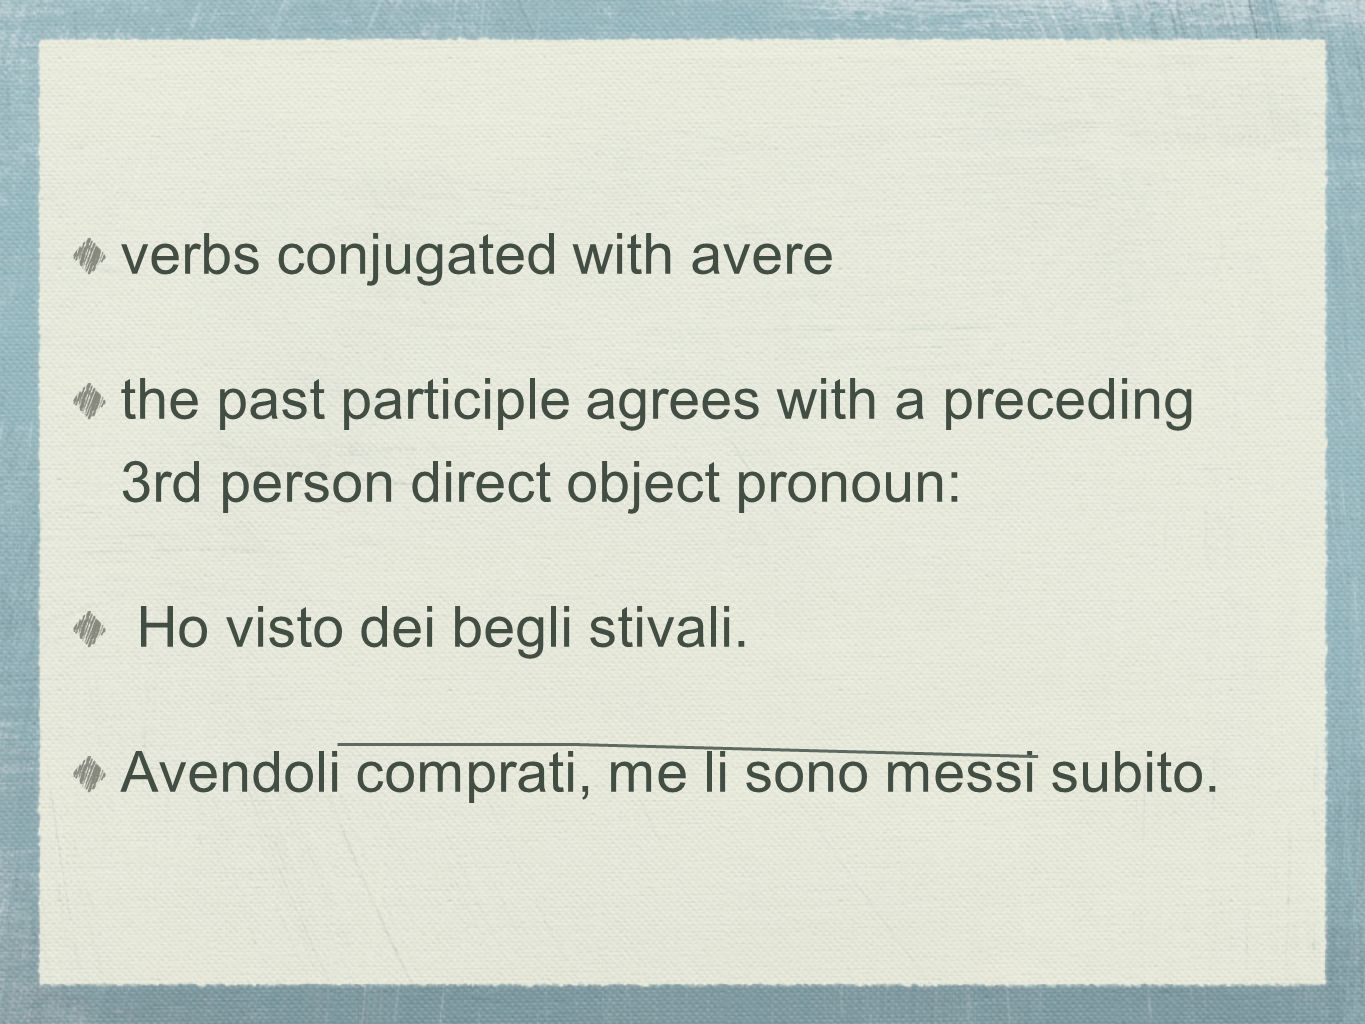 verbs conjugated with avere